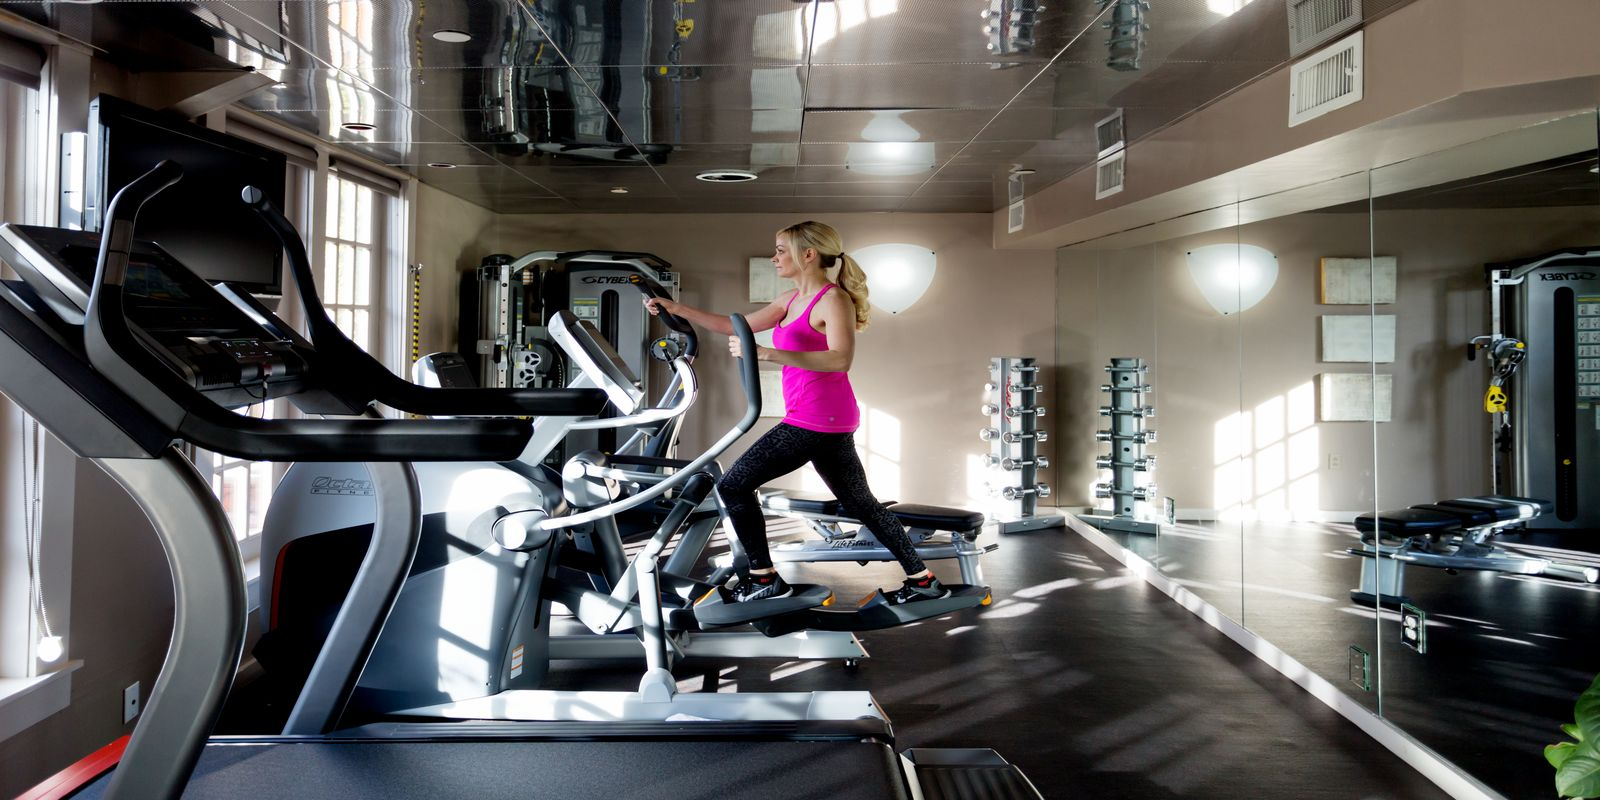 Photograph if a beautiful woman working out on our elliptical machine in our 24/7 fitness center.